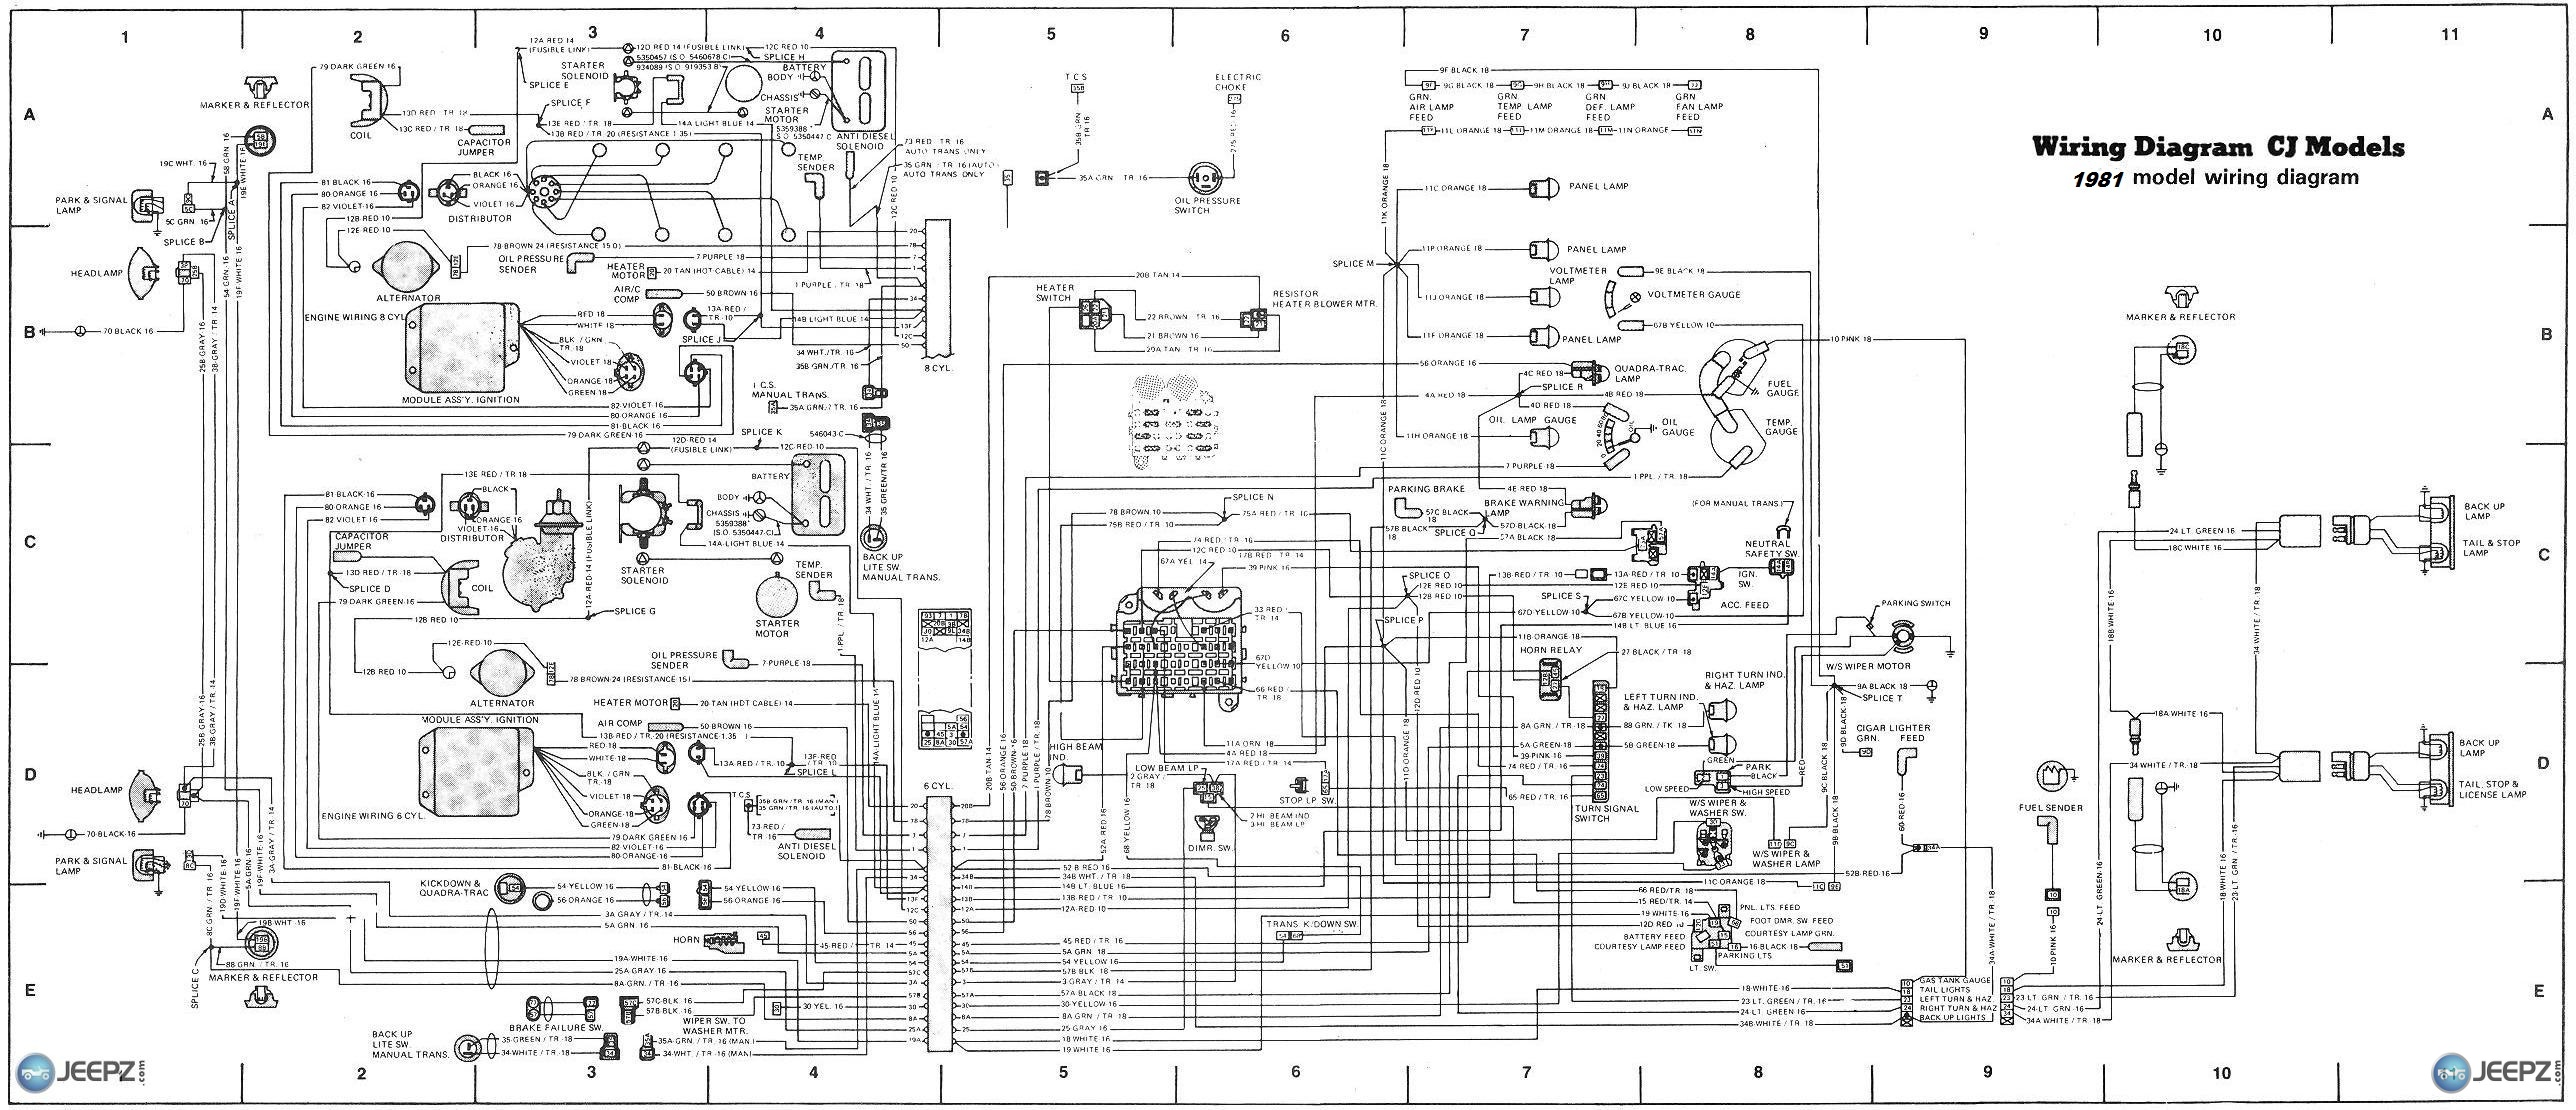 1980 jeep cj7 wiring diagram auto electrical wiring diagram 1981 jeep cj7  wiring-diagram 1980